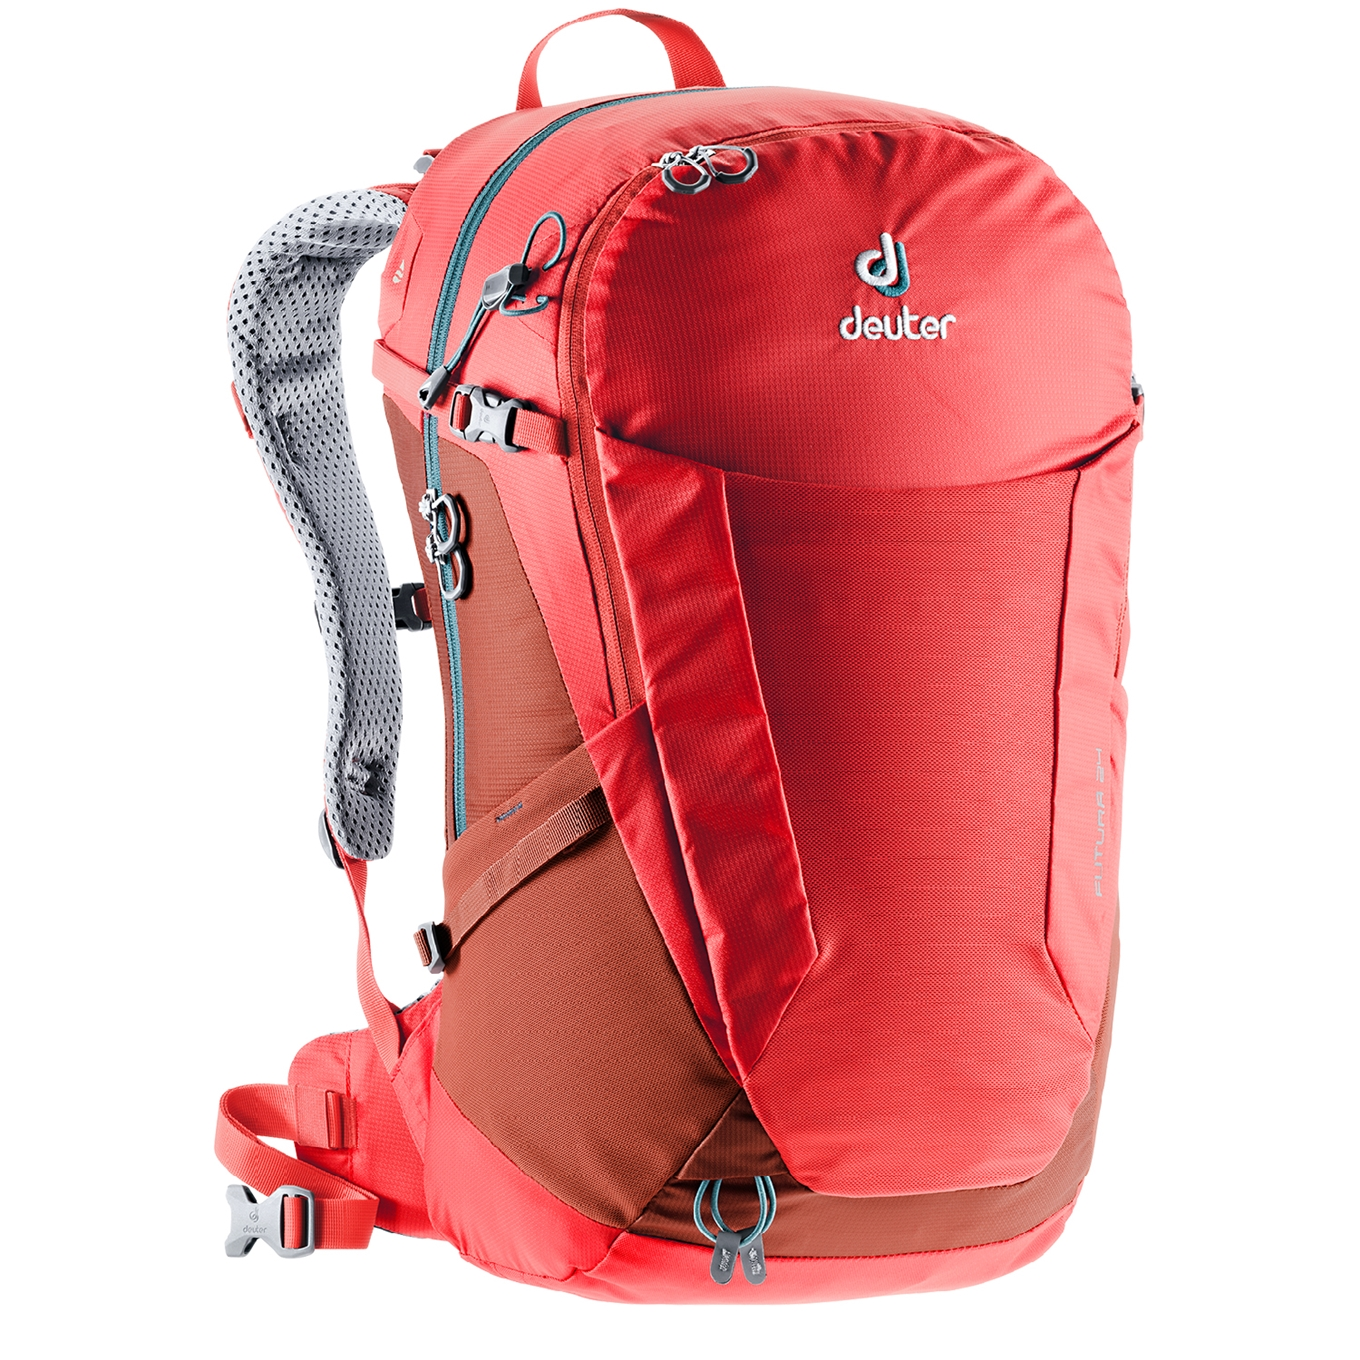 Deuter Futura 24 Backpack chili/lava backpack